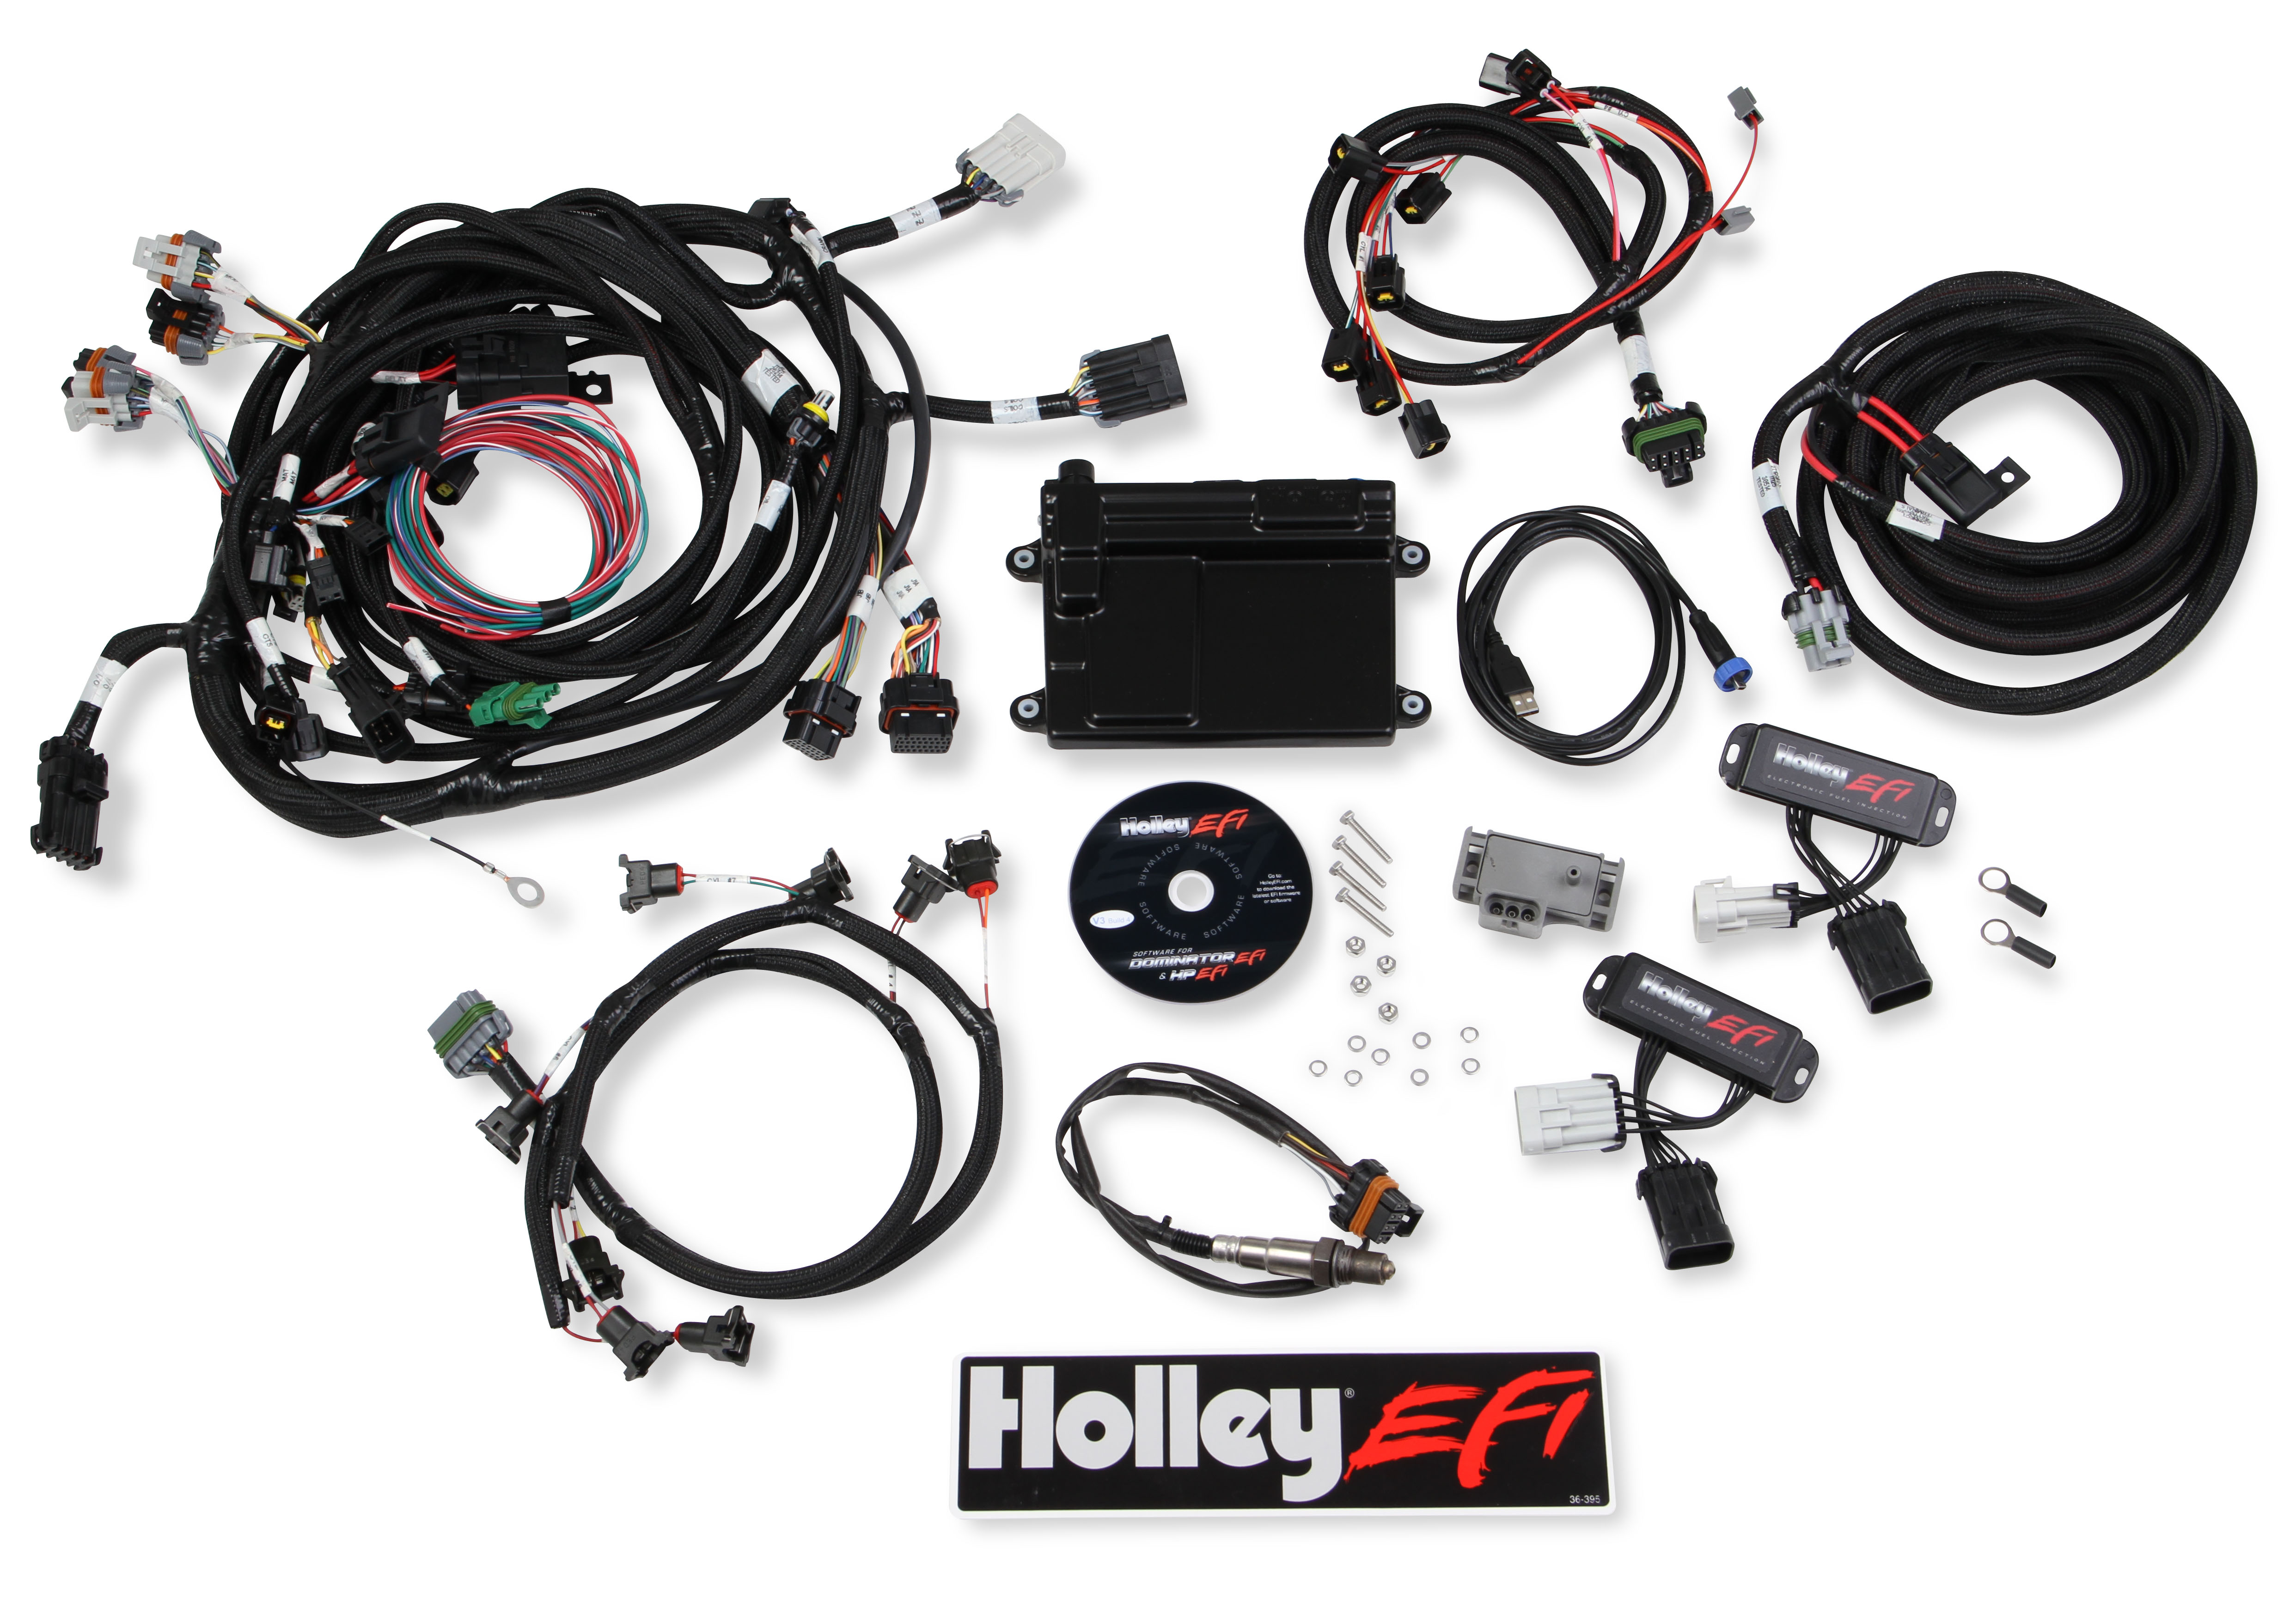 Holley 99-04 Ford Modular 4 Valve HP EFI ECU & HARNESS KITS on